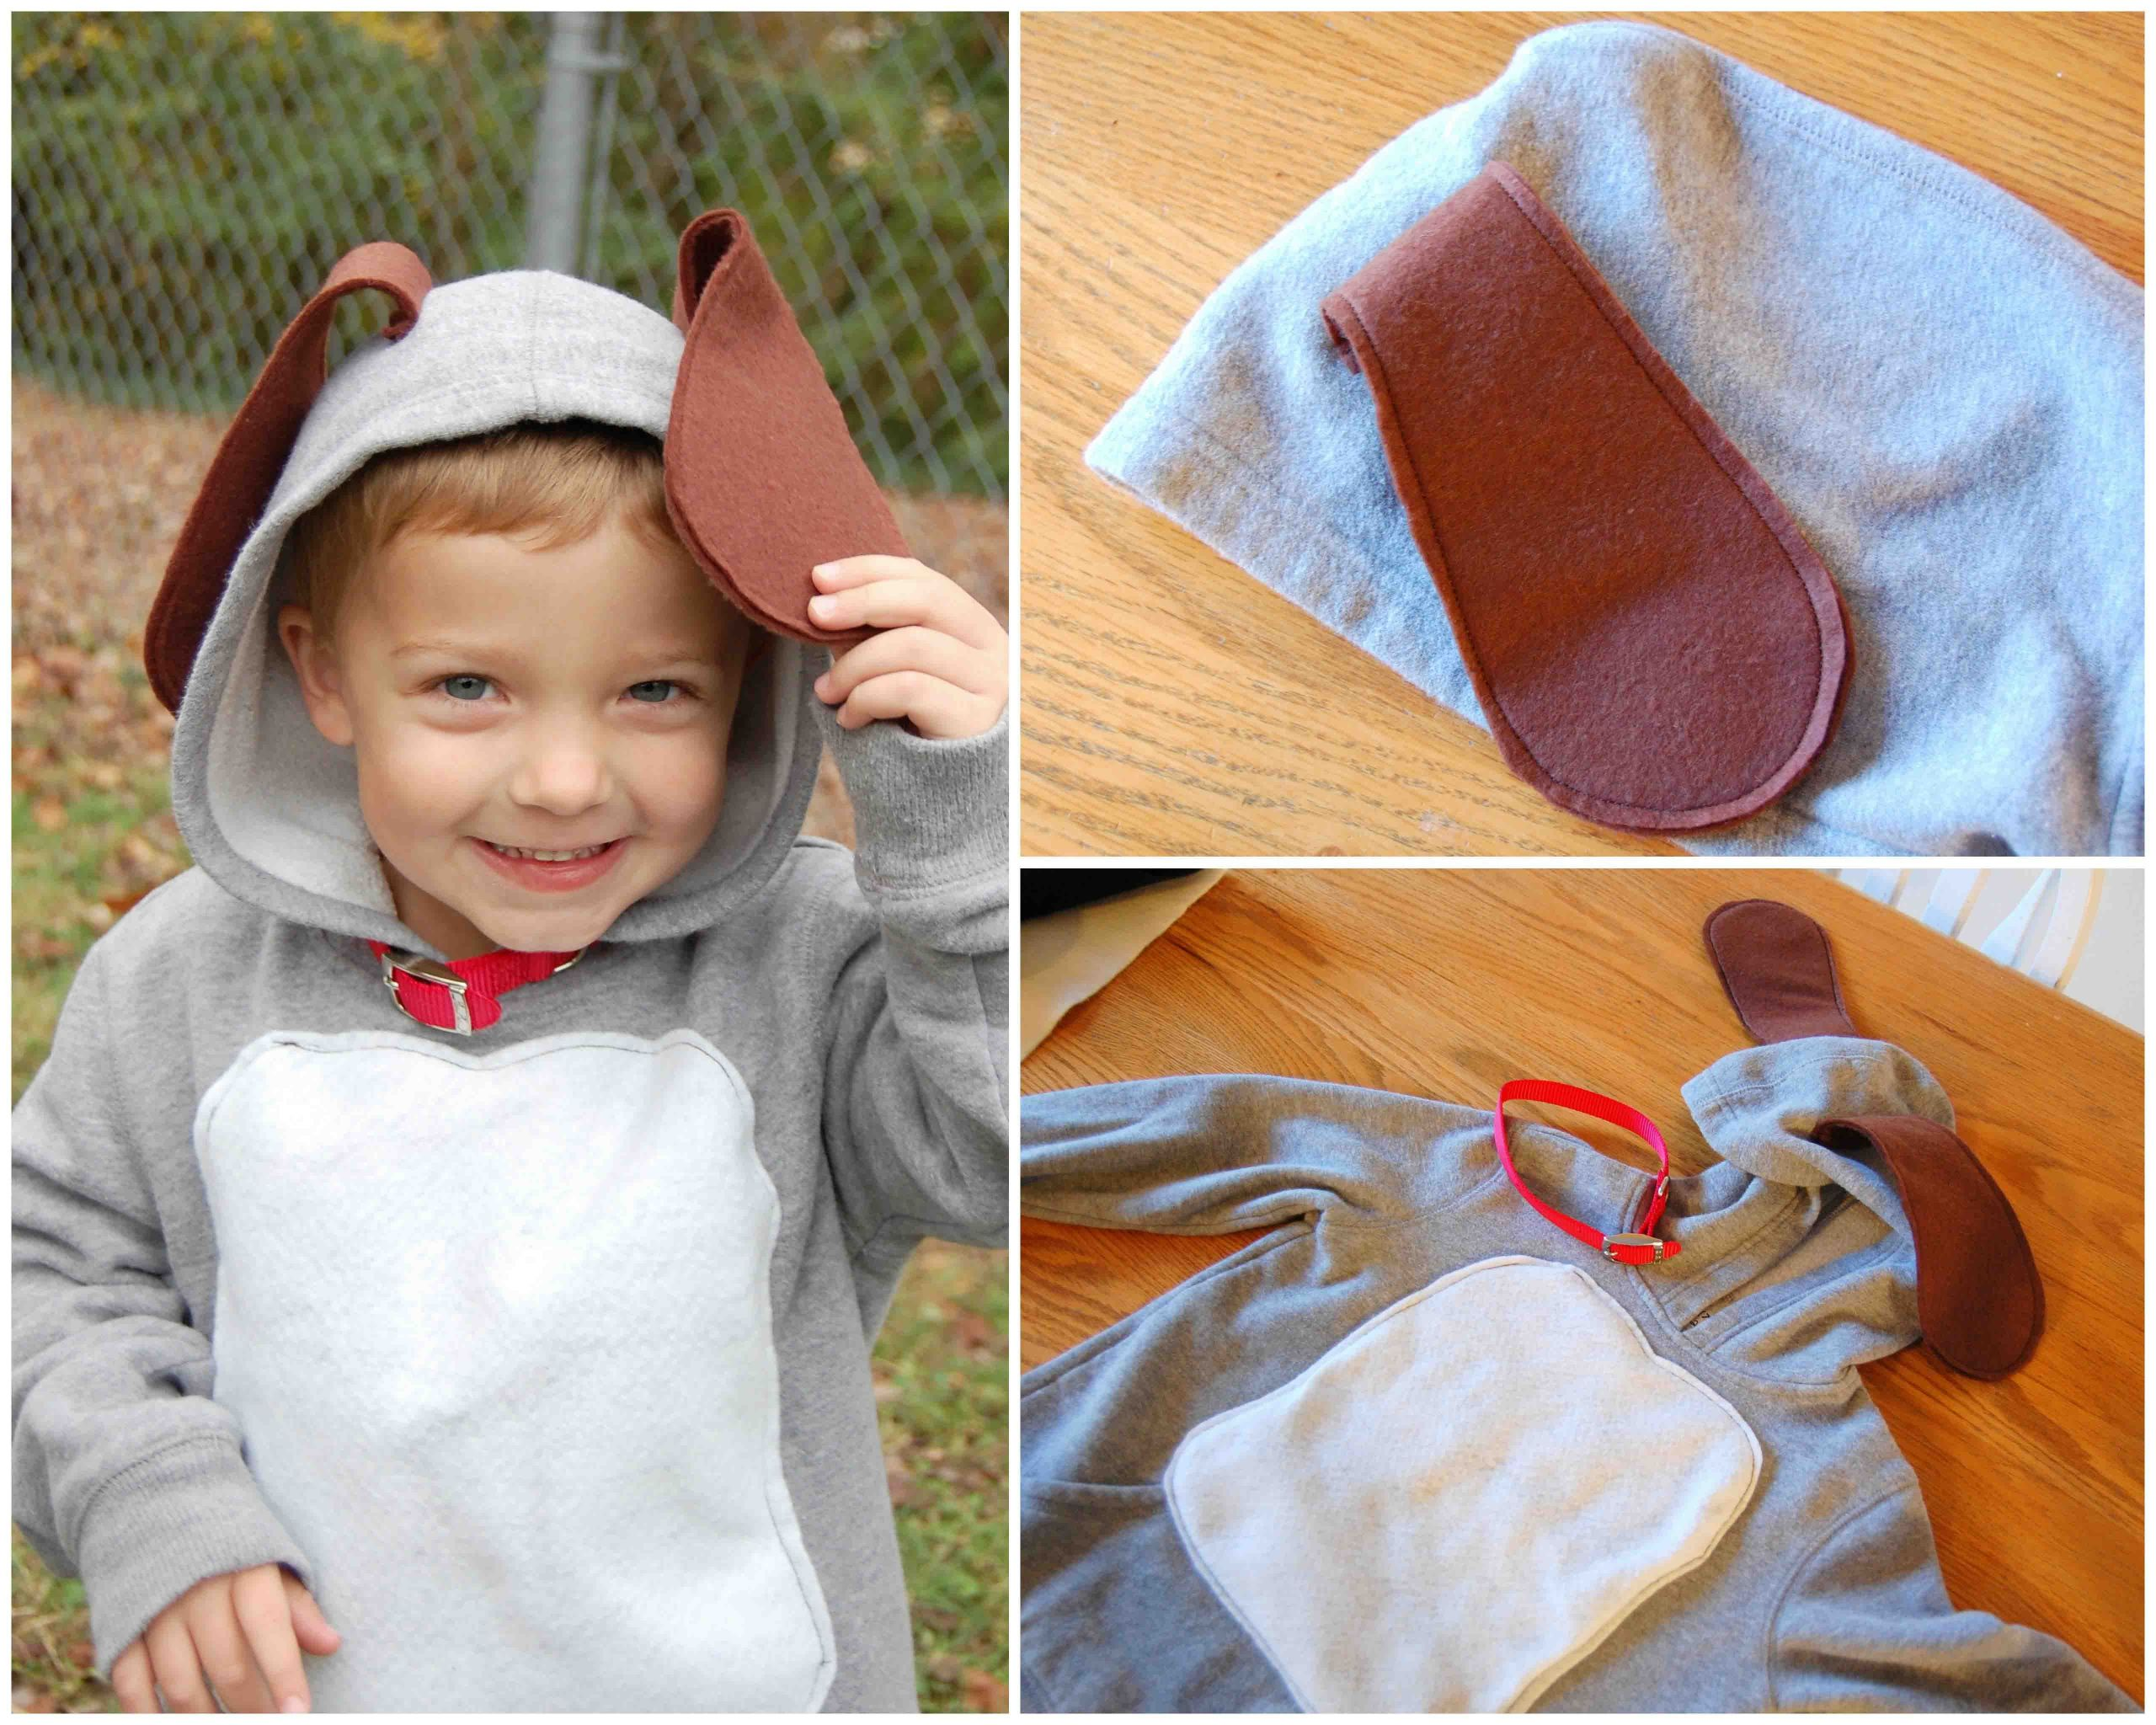 DIY Dog Costumes For Kids  [Pinning my own because I had trouble finding a homemade